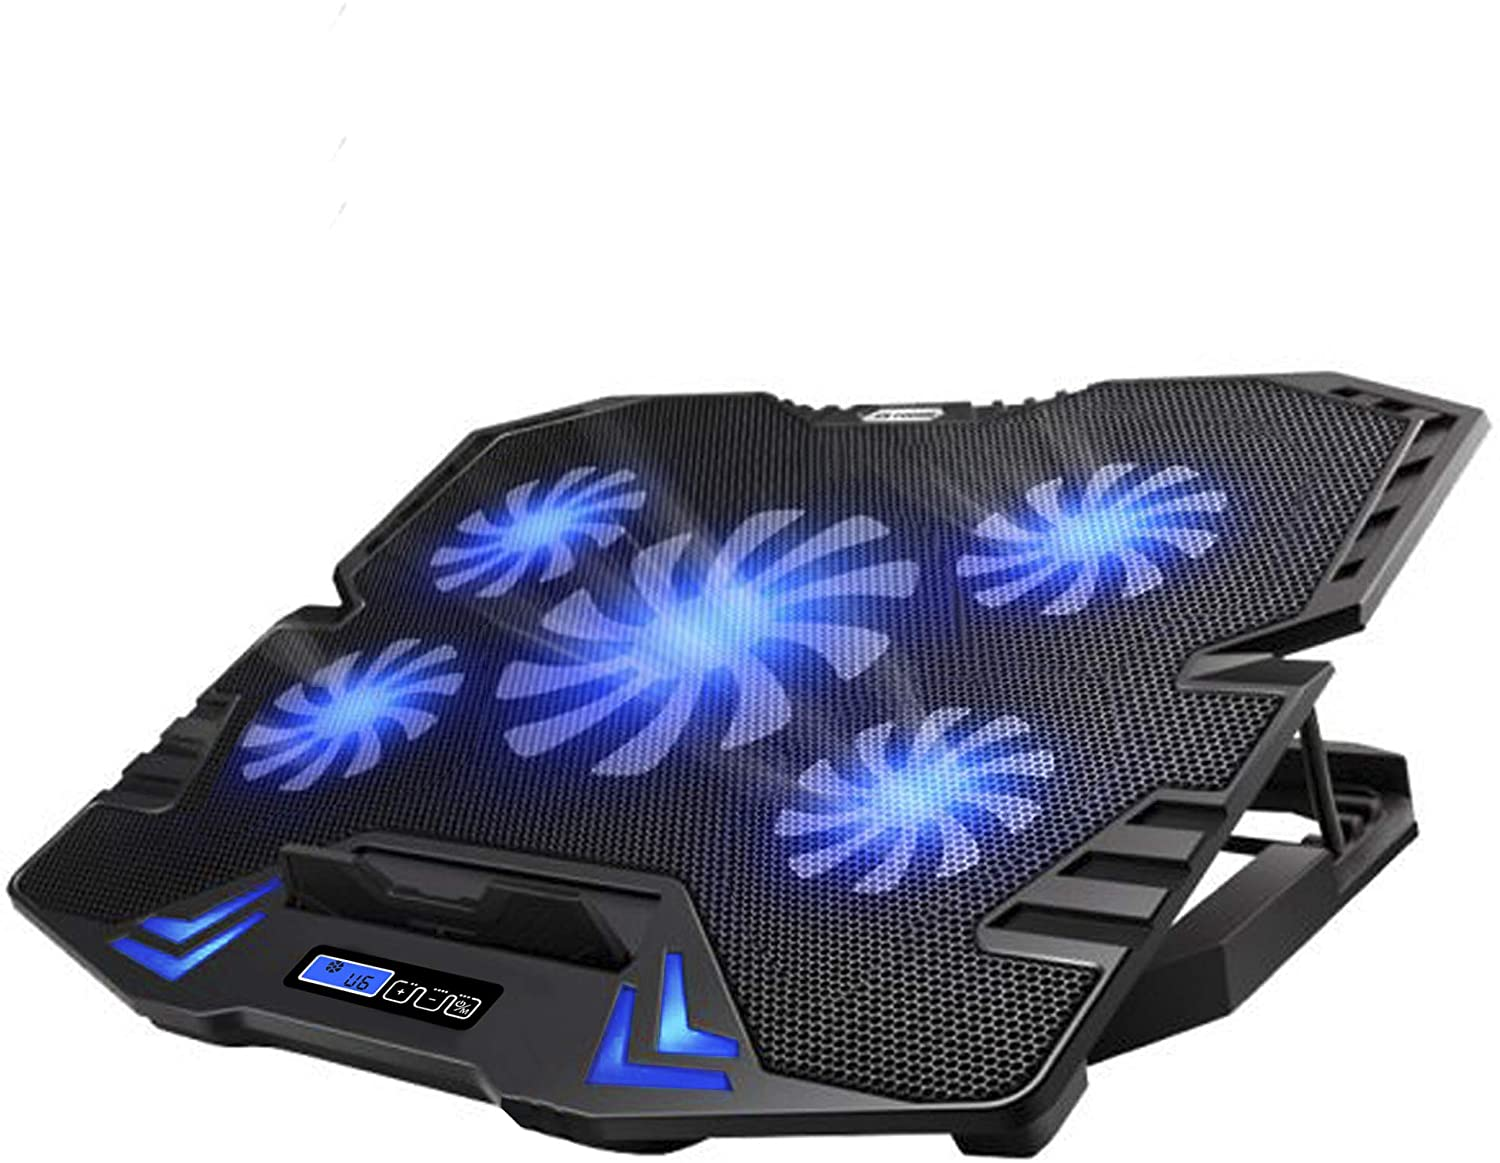 TopMate C5 10 15.6 Inch Gaming Laptop Cooler Cooling Pad